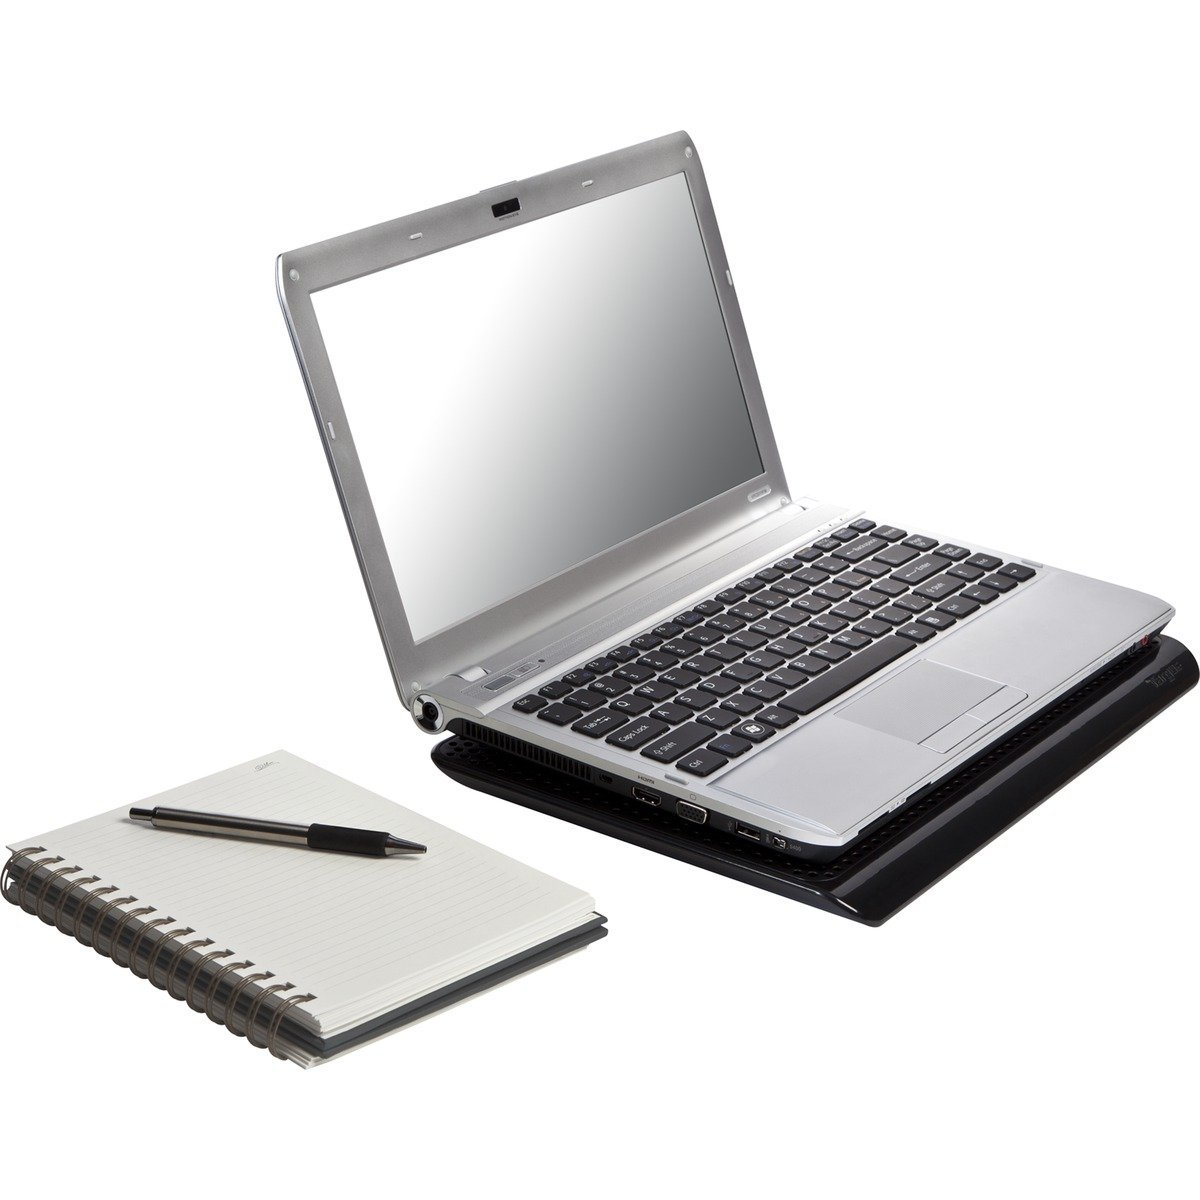 Targus Single Fan Laptop Cooling Chill Mat with USB Connection (AWE69US) by Targus (Image #3)